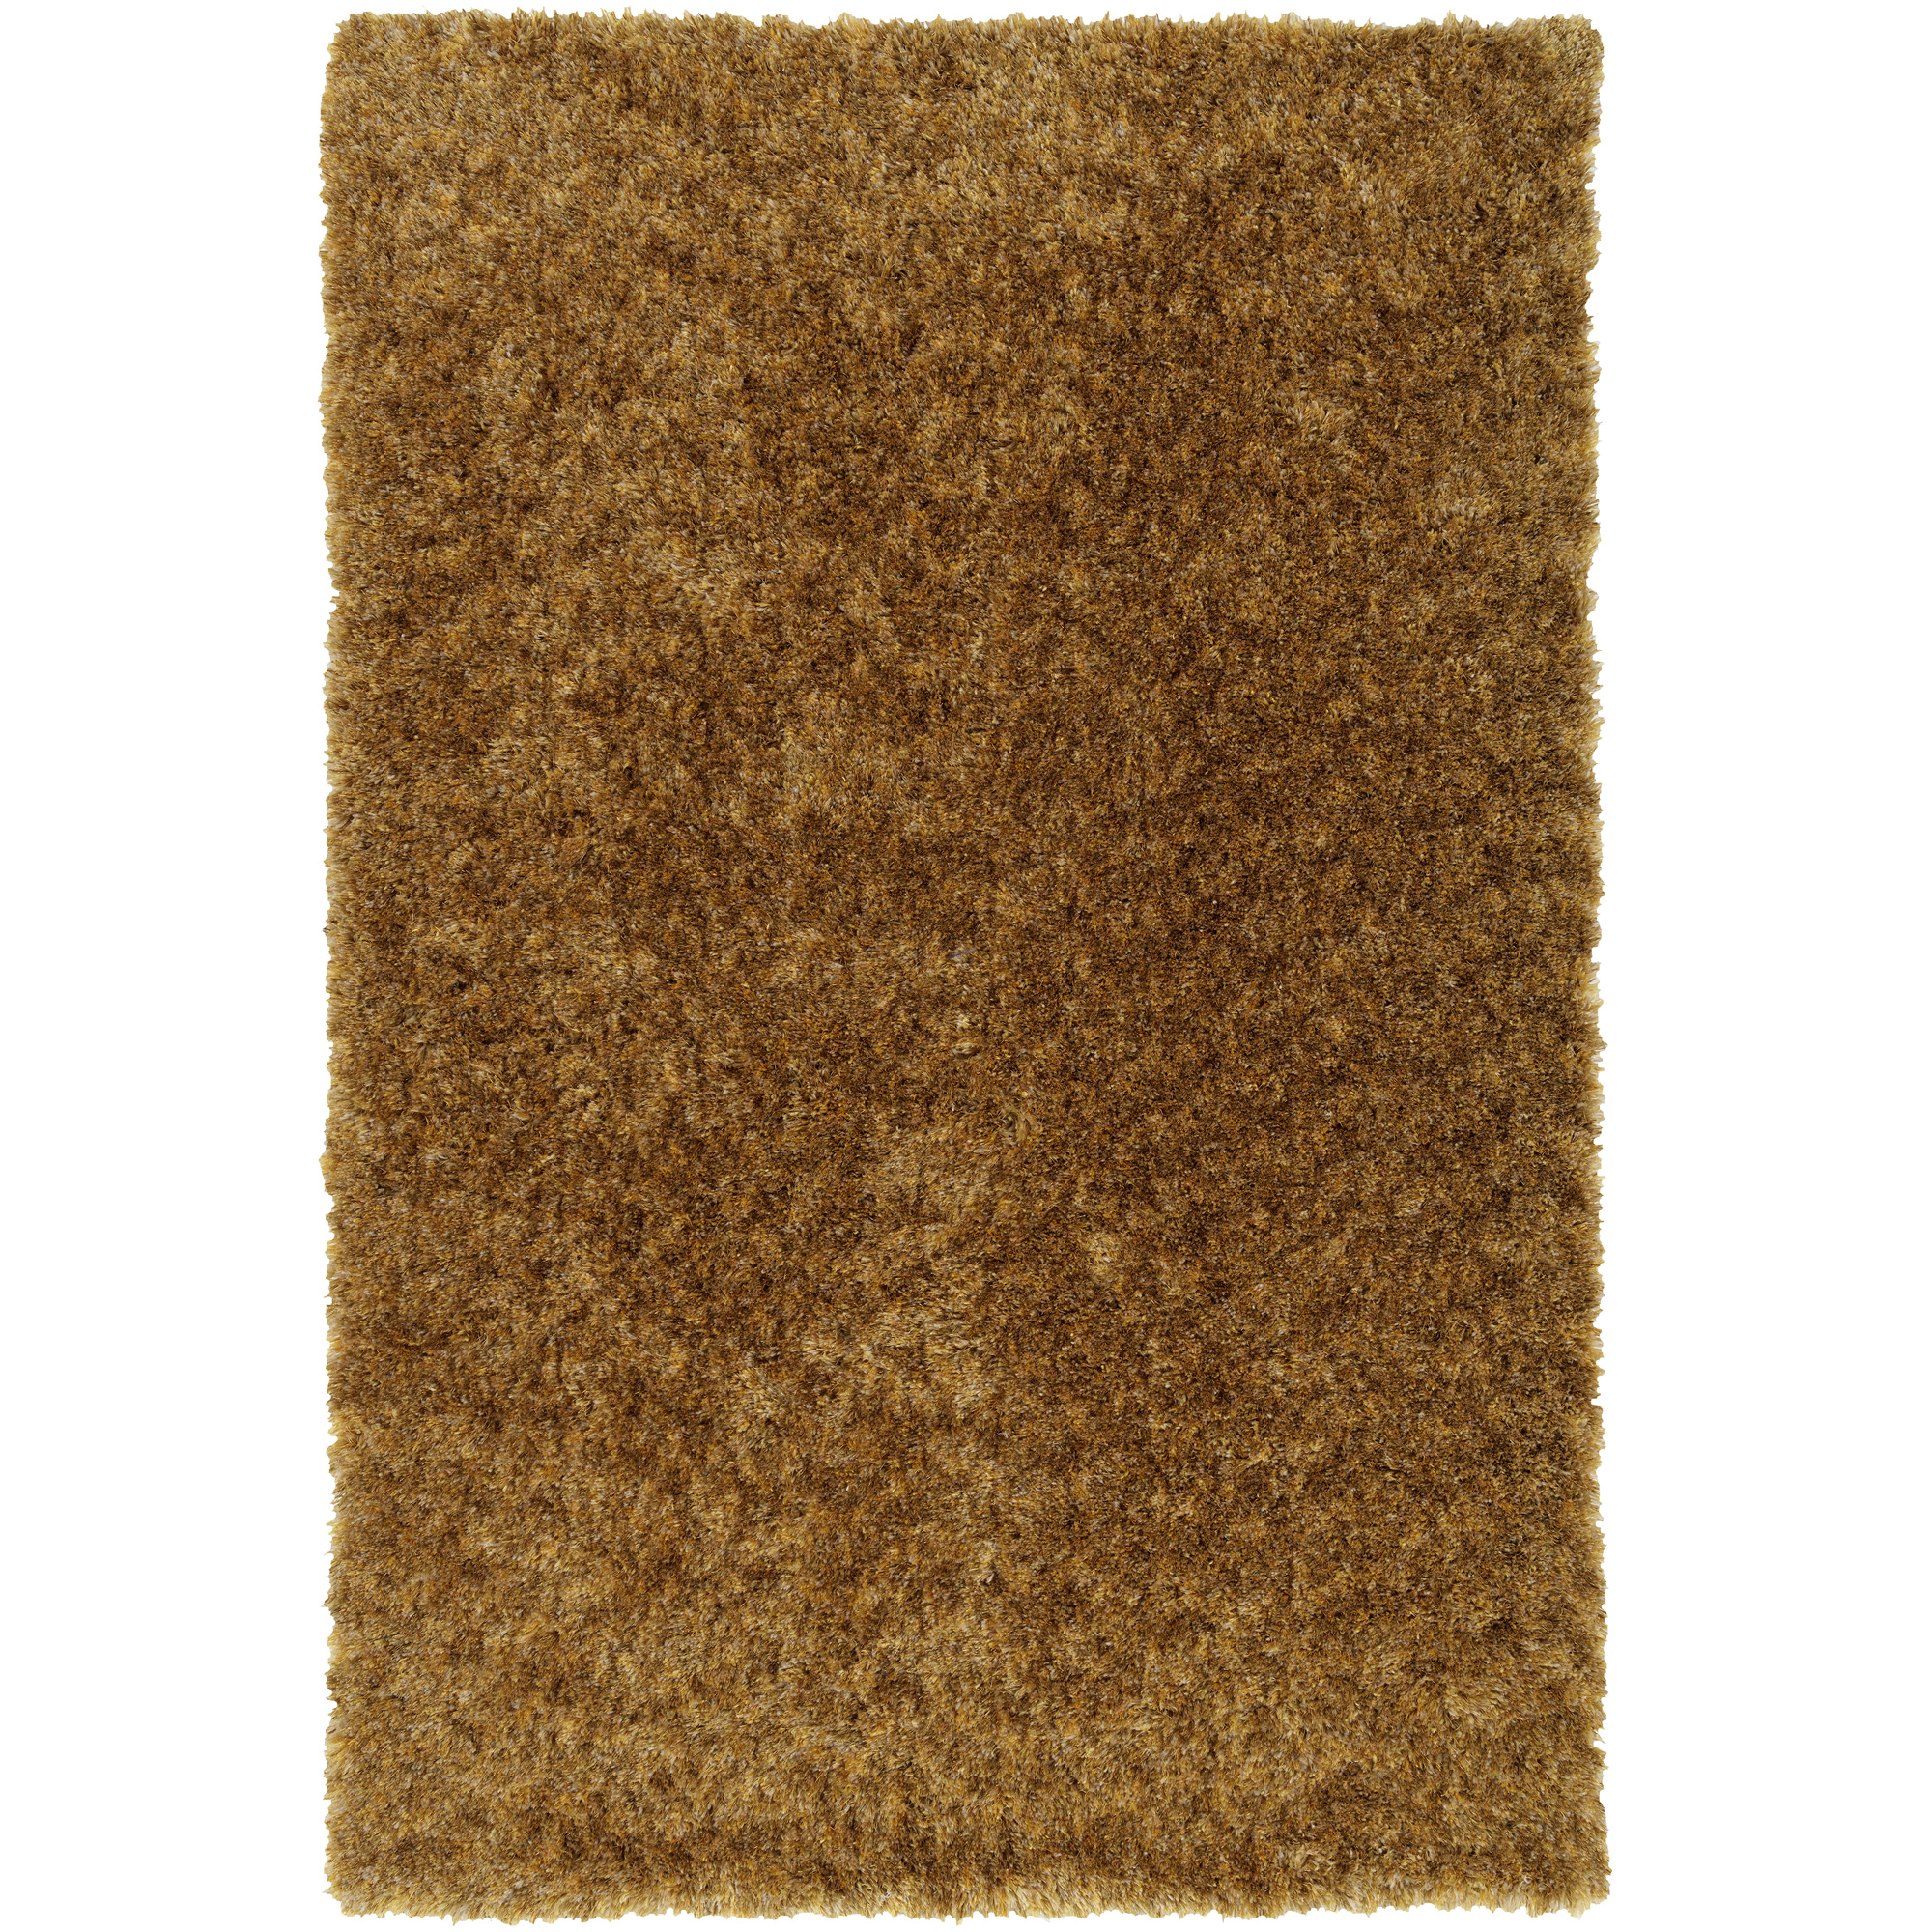 Dalyn Rug | Cabot Gold 5x8 Area Rug